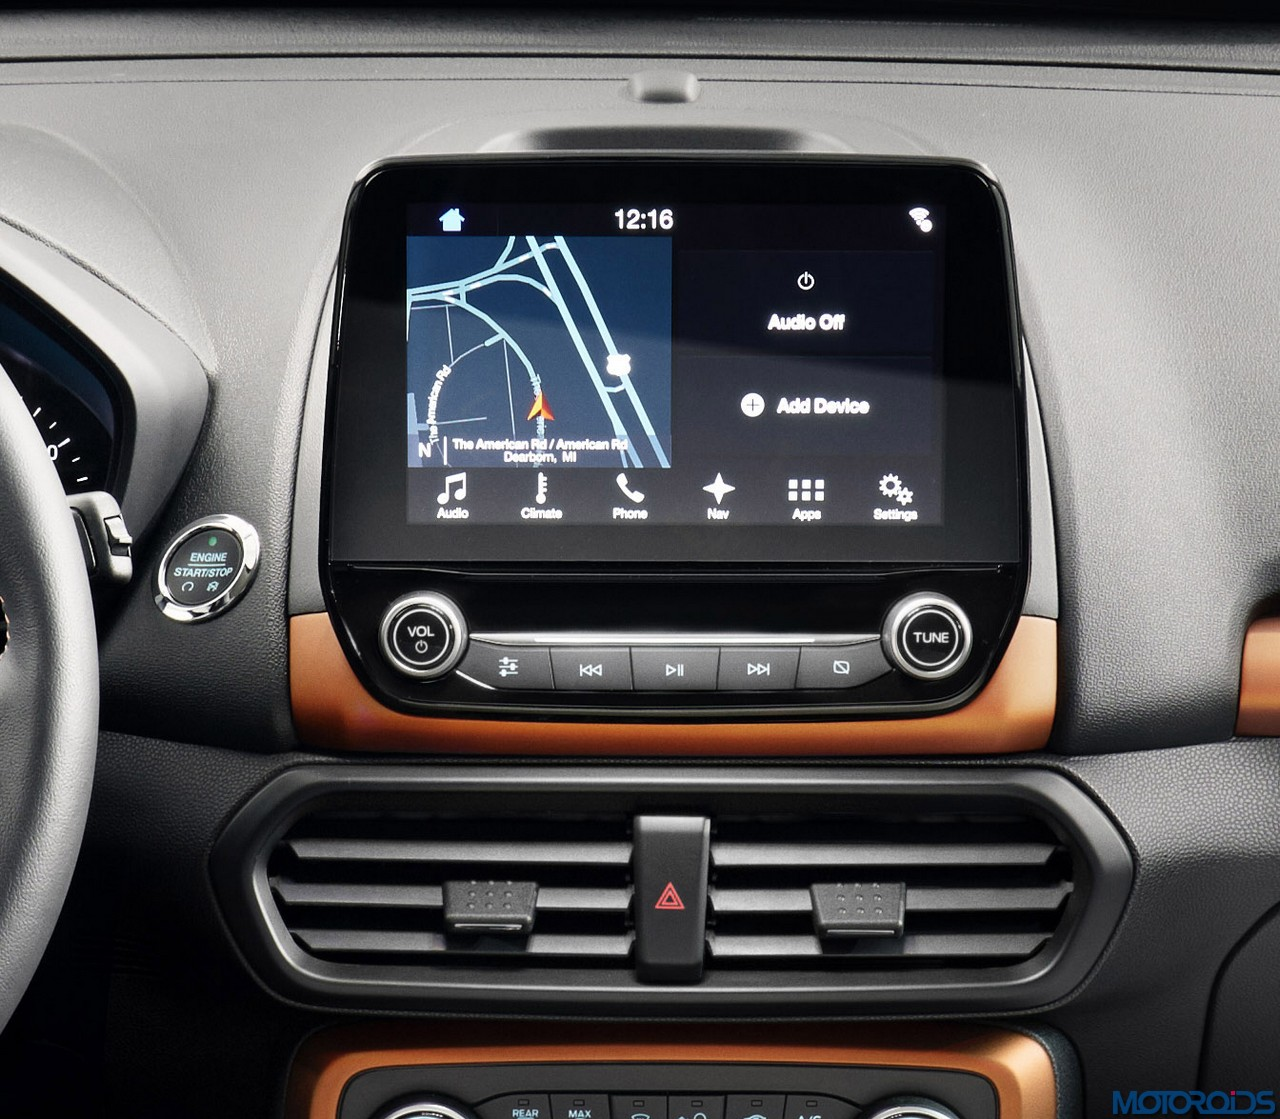 All New Ford EcoSport SES Features Unique Interior Styling Cues Such As Bold Copper Accents